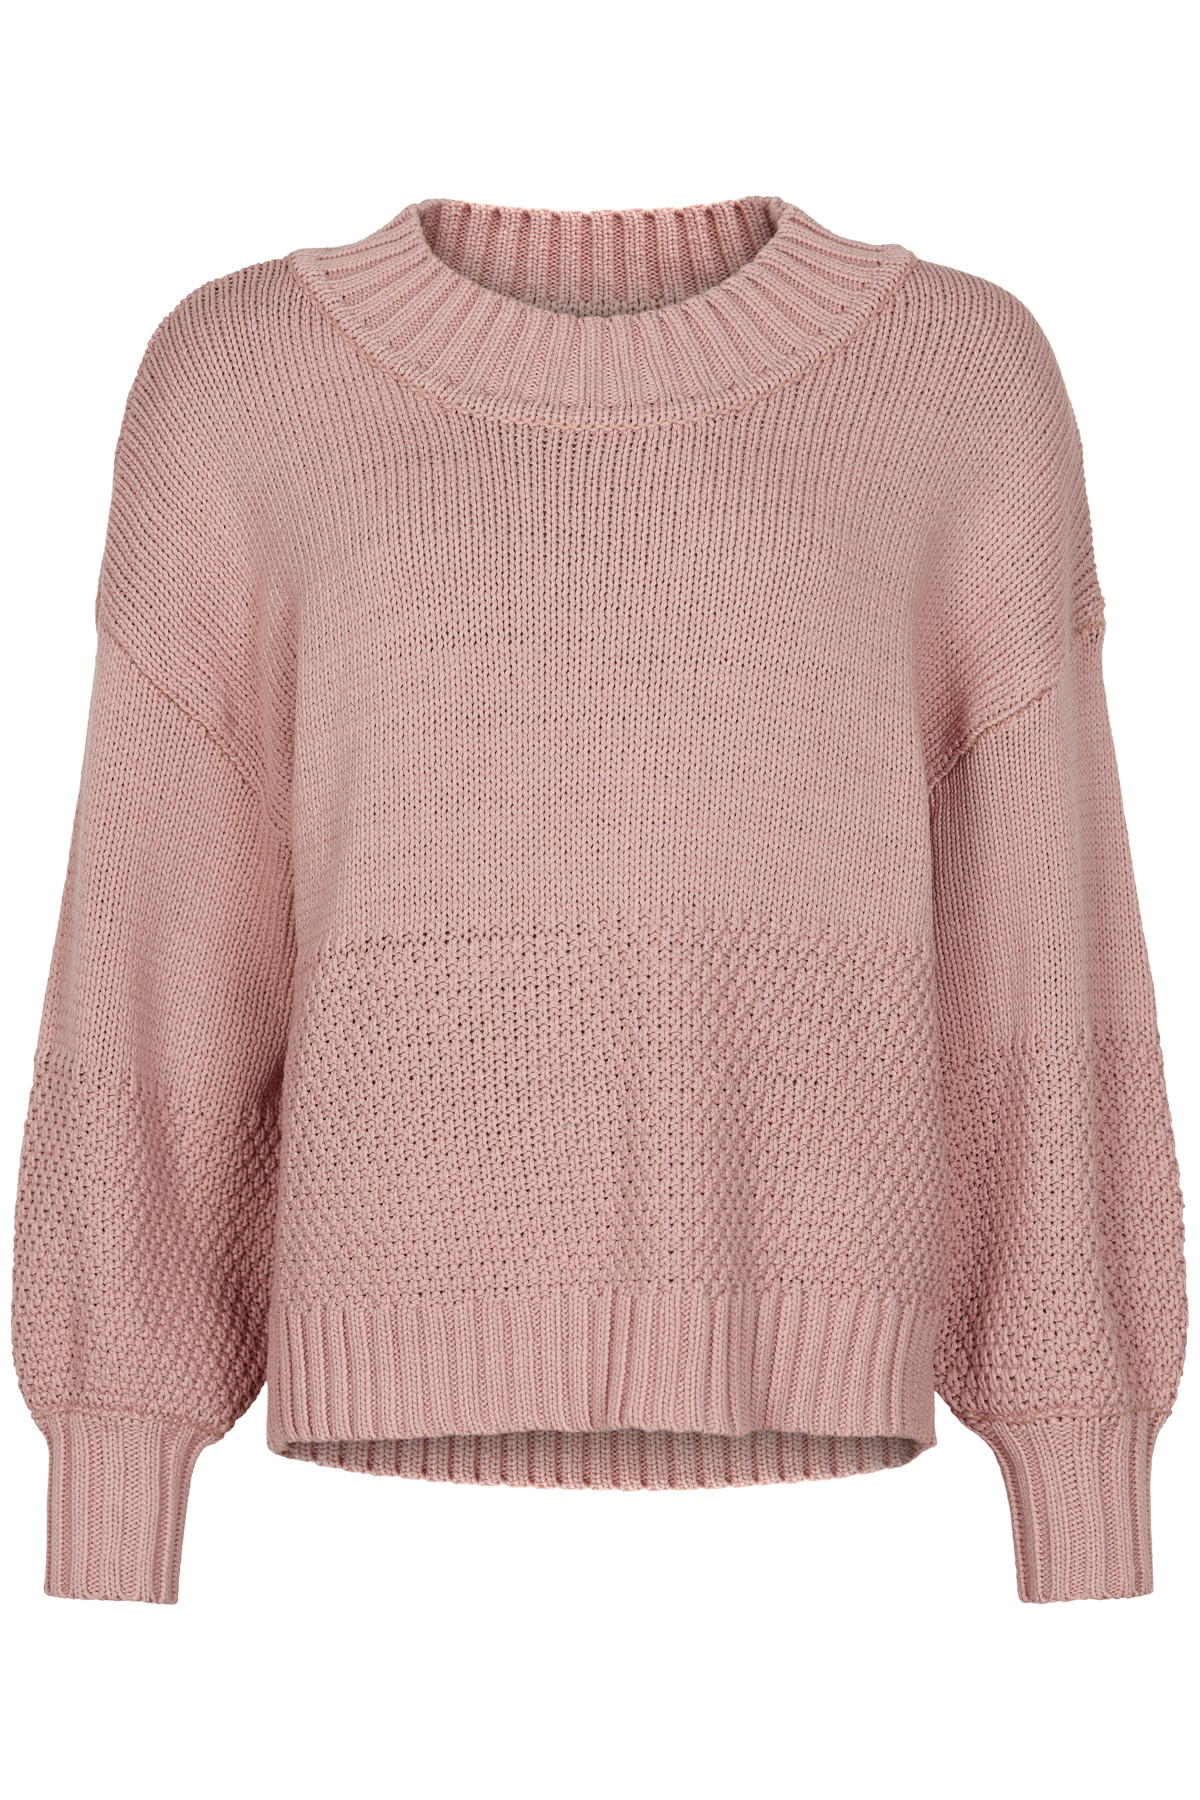 Image of   AND LESS ALANIESE PULLOVER 5120203 (Pale Mauve, M)